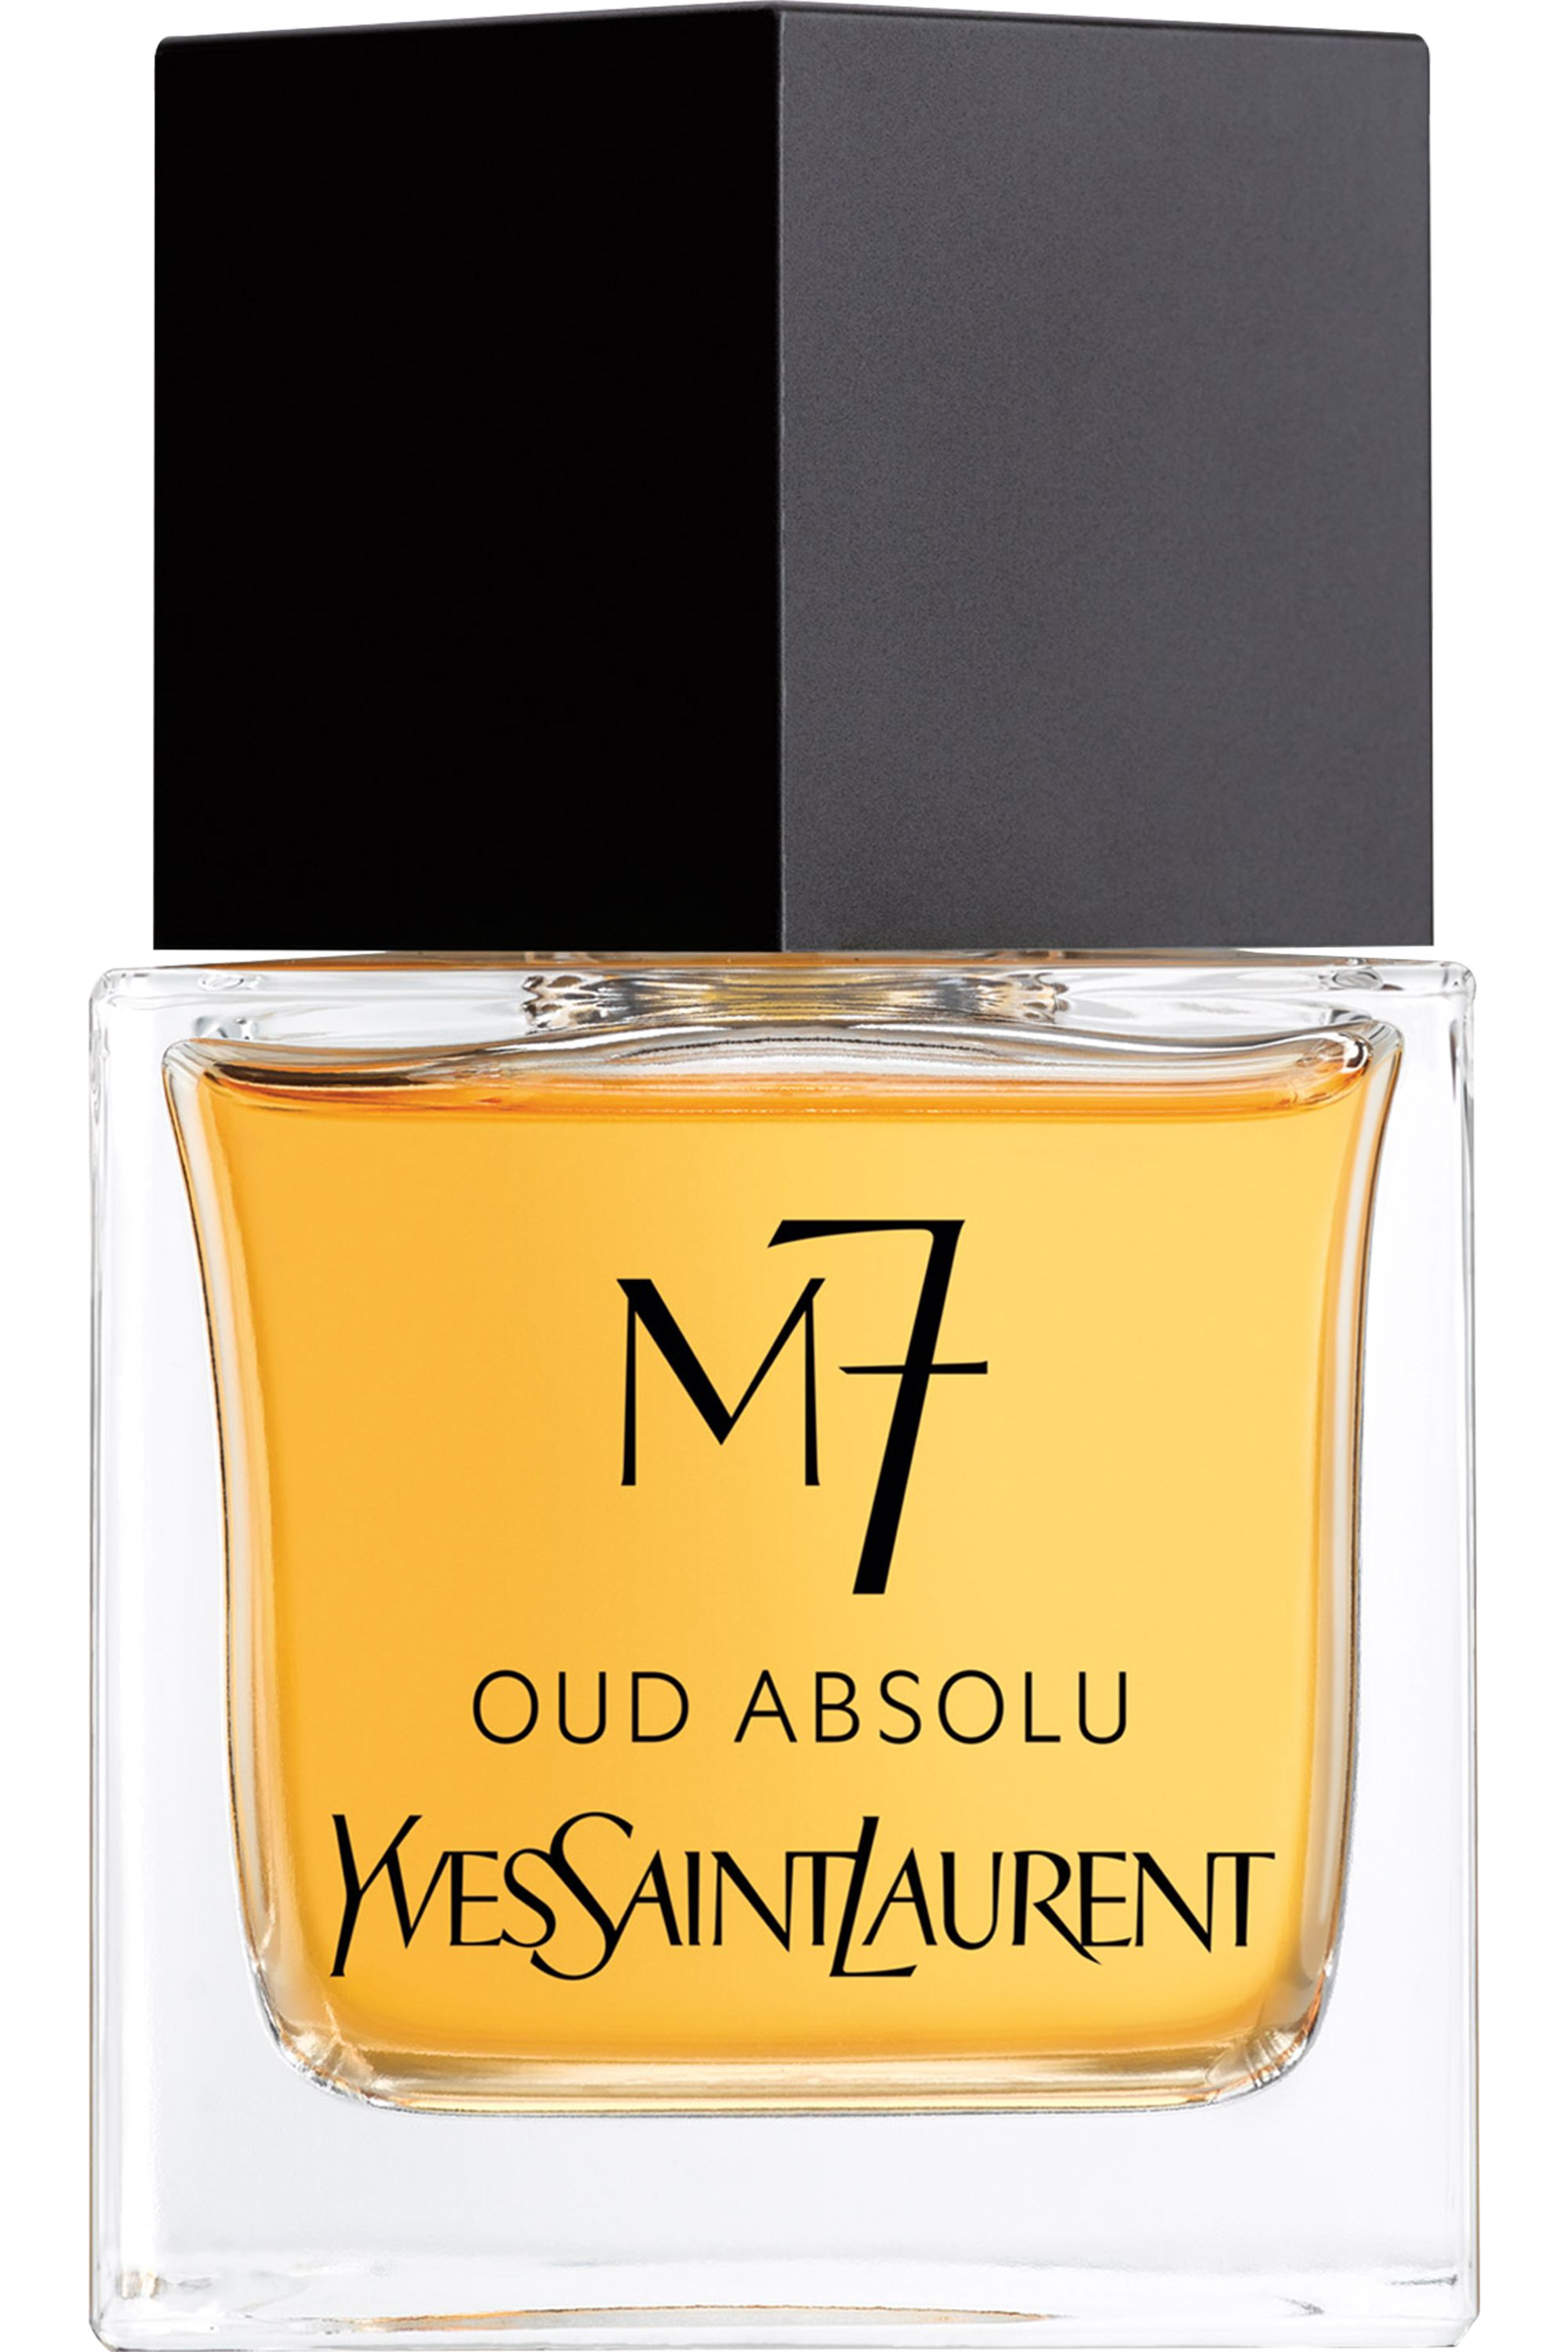 Blissim : Yves Saint Laurent - M7 Oud Absolu - M7 Oud Absolu